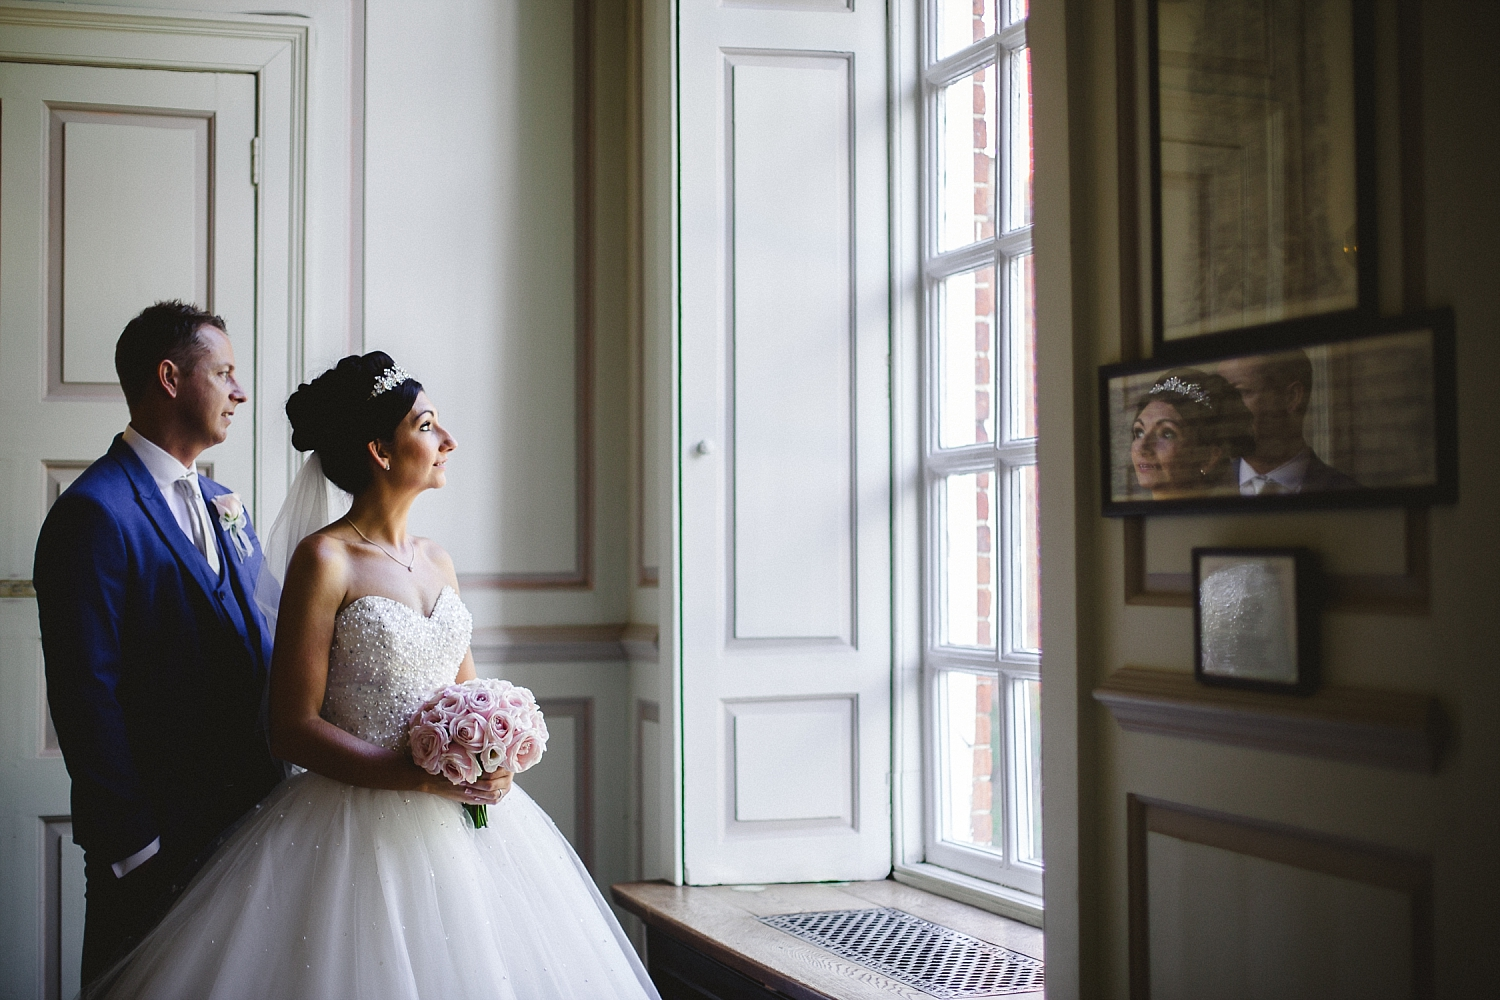 Gosfield Hall Wedding - Portraits in the House